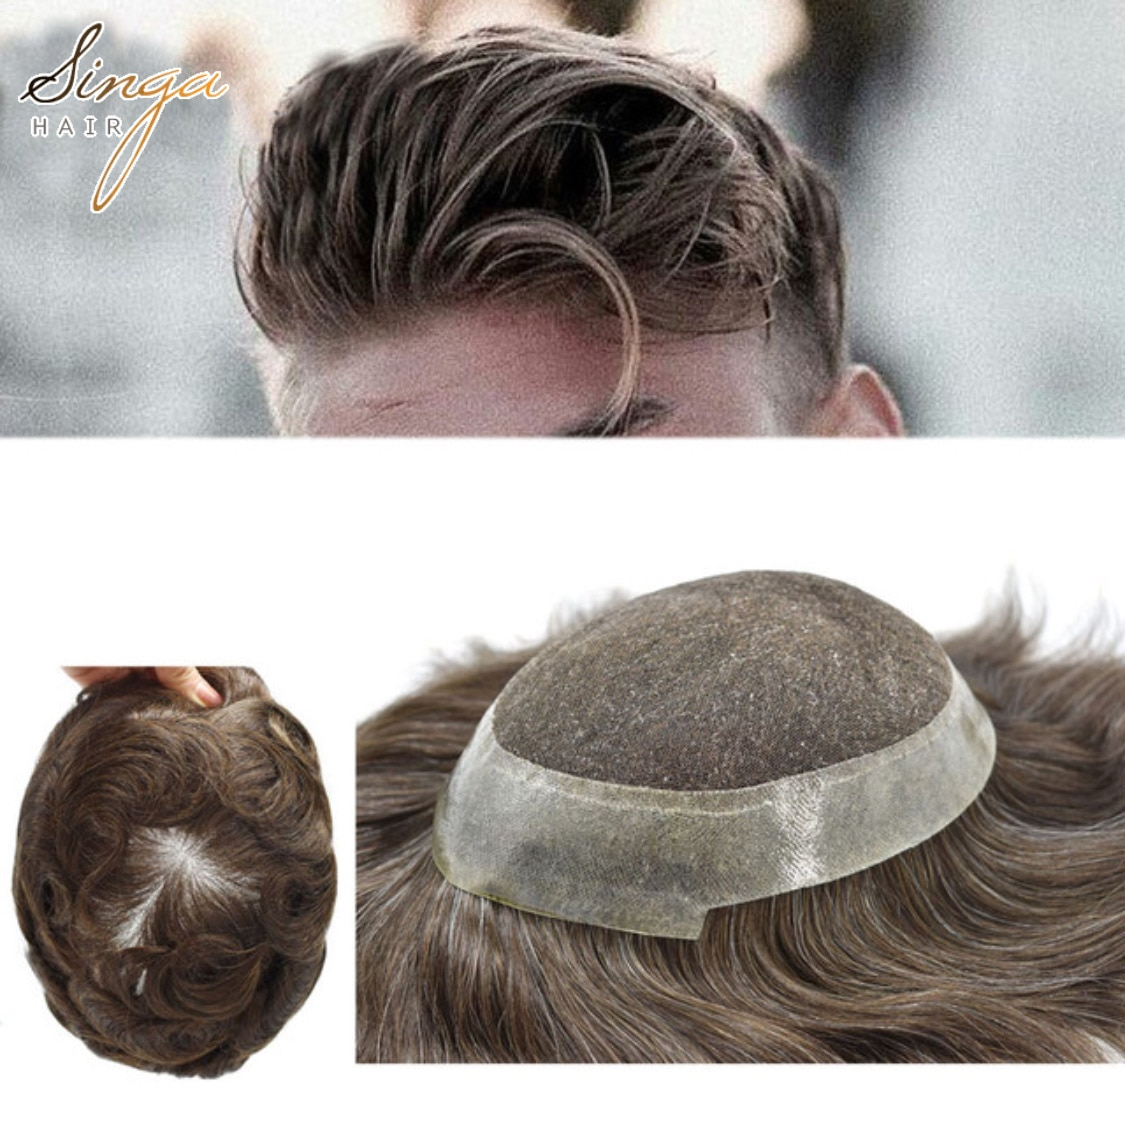 Full French Lace Men Toupee Easy Tape Attached Around Hair Replacement Australia Skin Realistic Hairpieces Wig Manufacturer